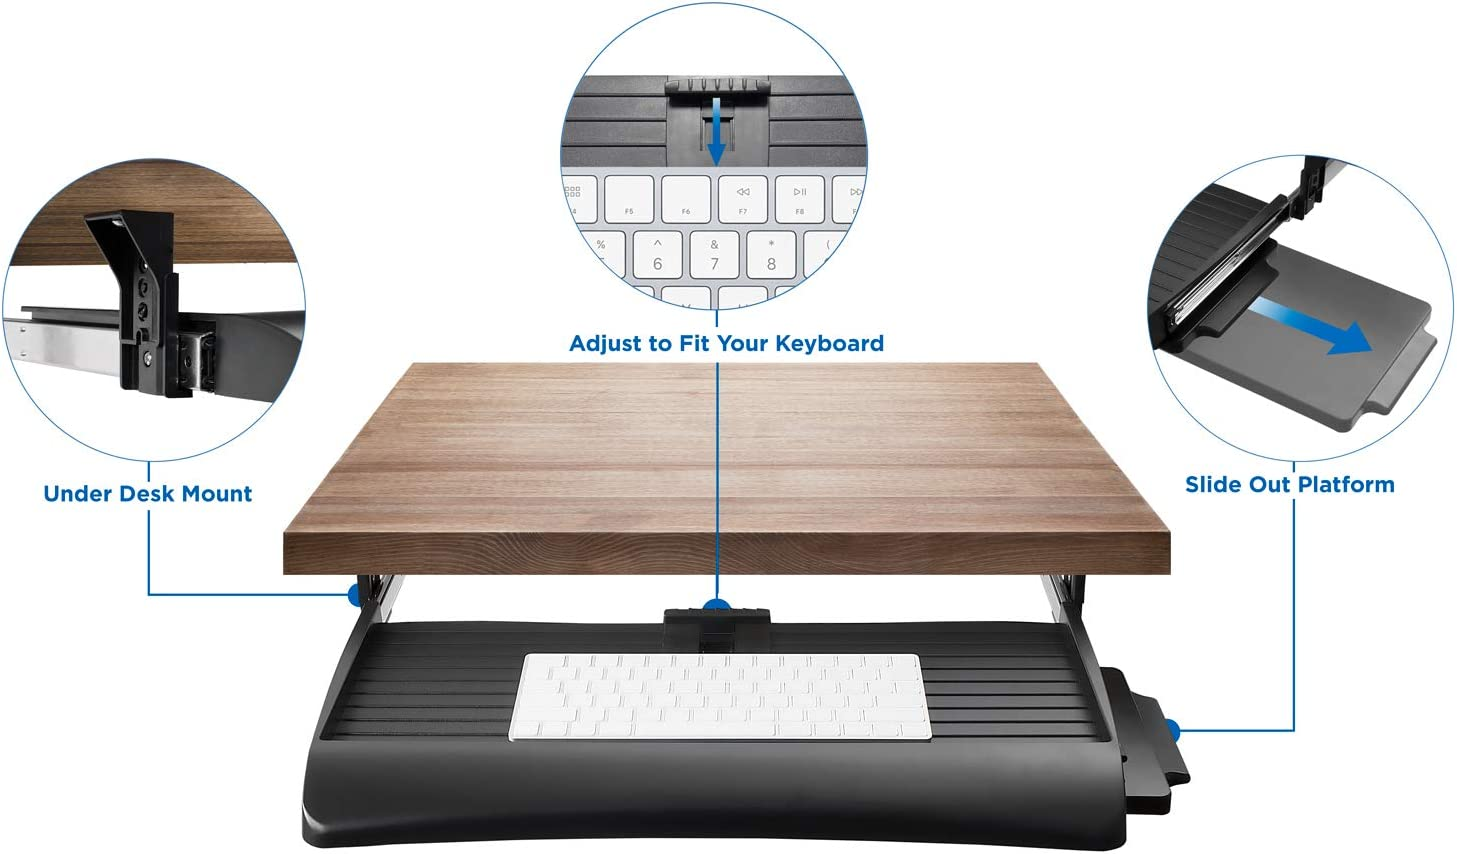 Under Desk Computer Keyboard and Mouse Drawer Mount-It